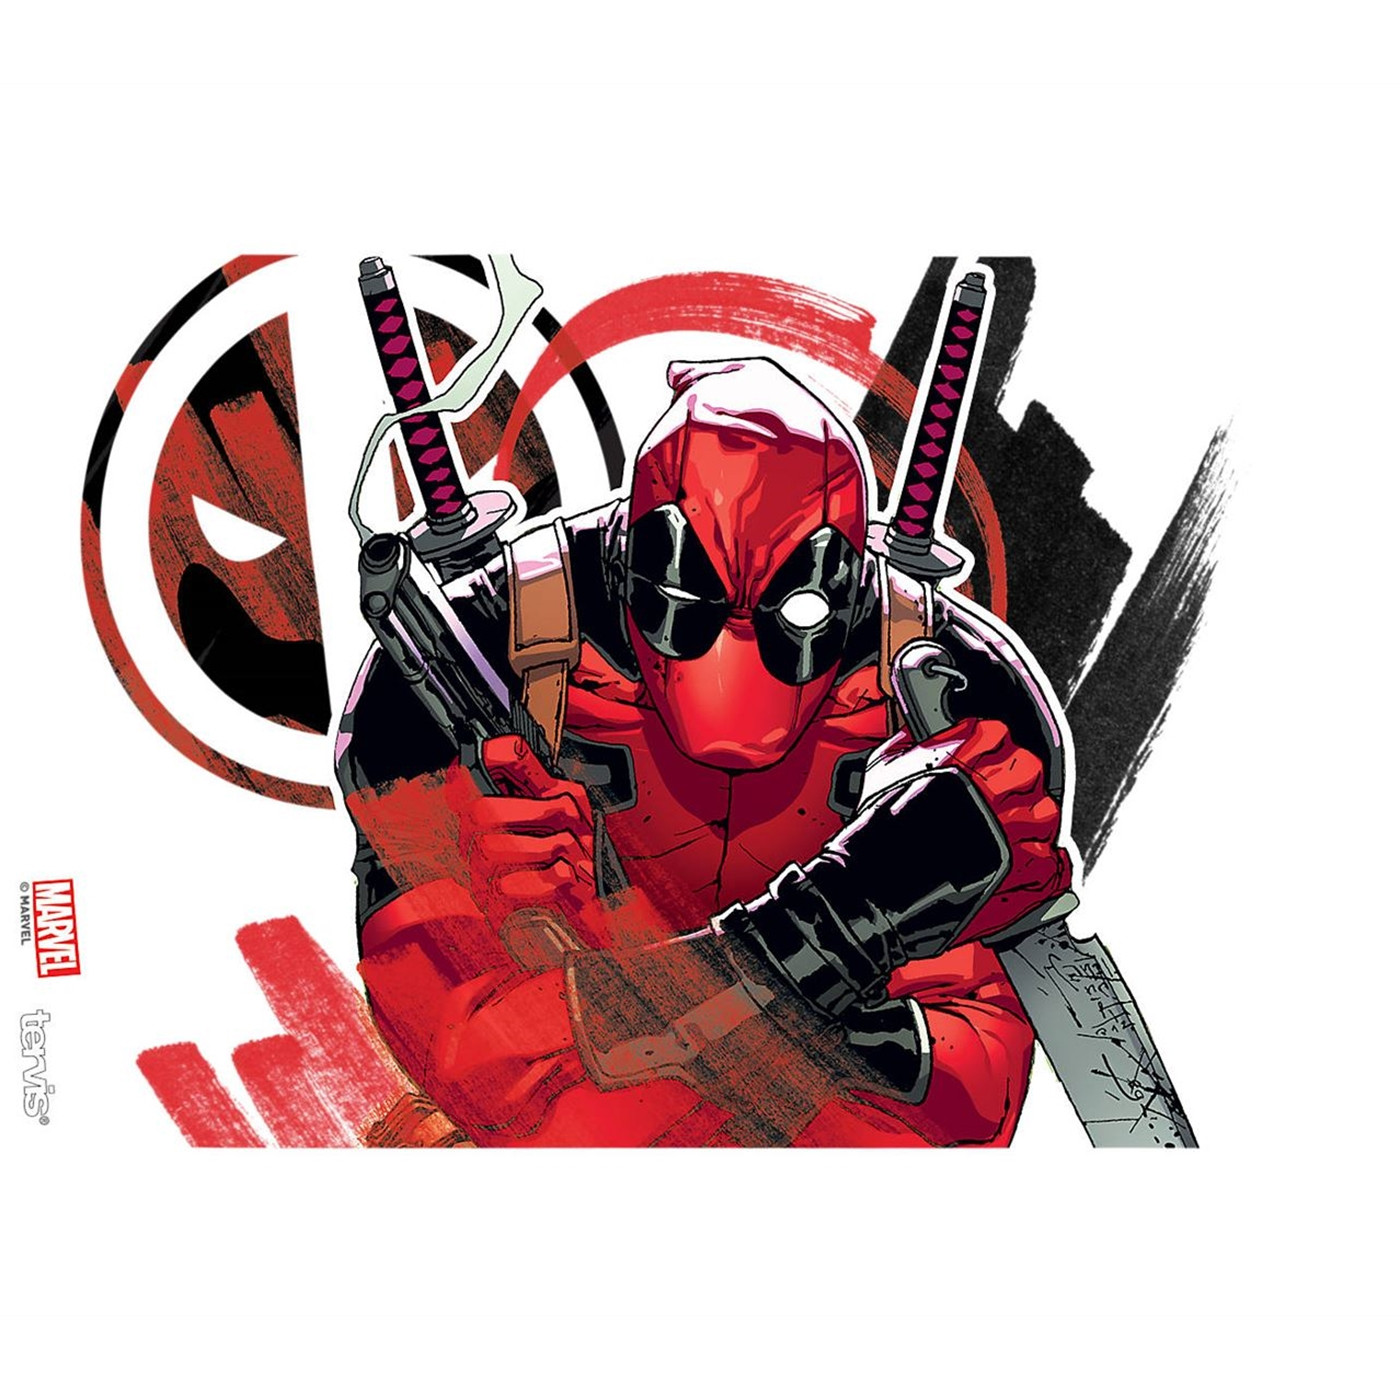 Deadpool Iconic Wrap Tumbler With Travel Lid 16 oz Tervis®